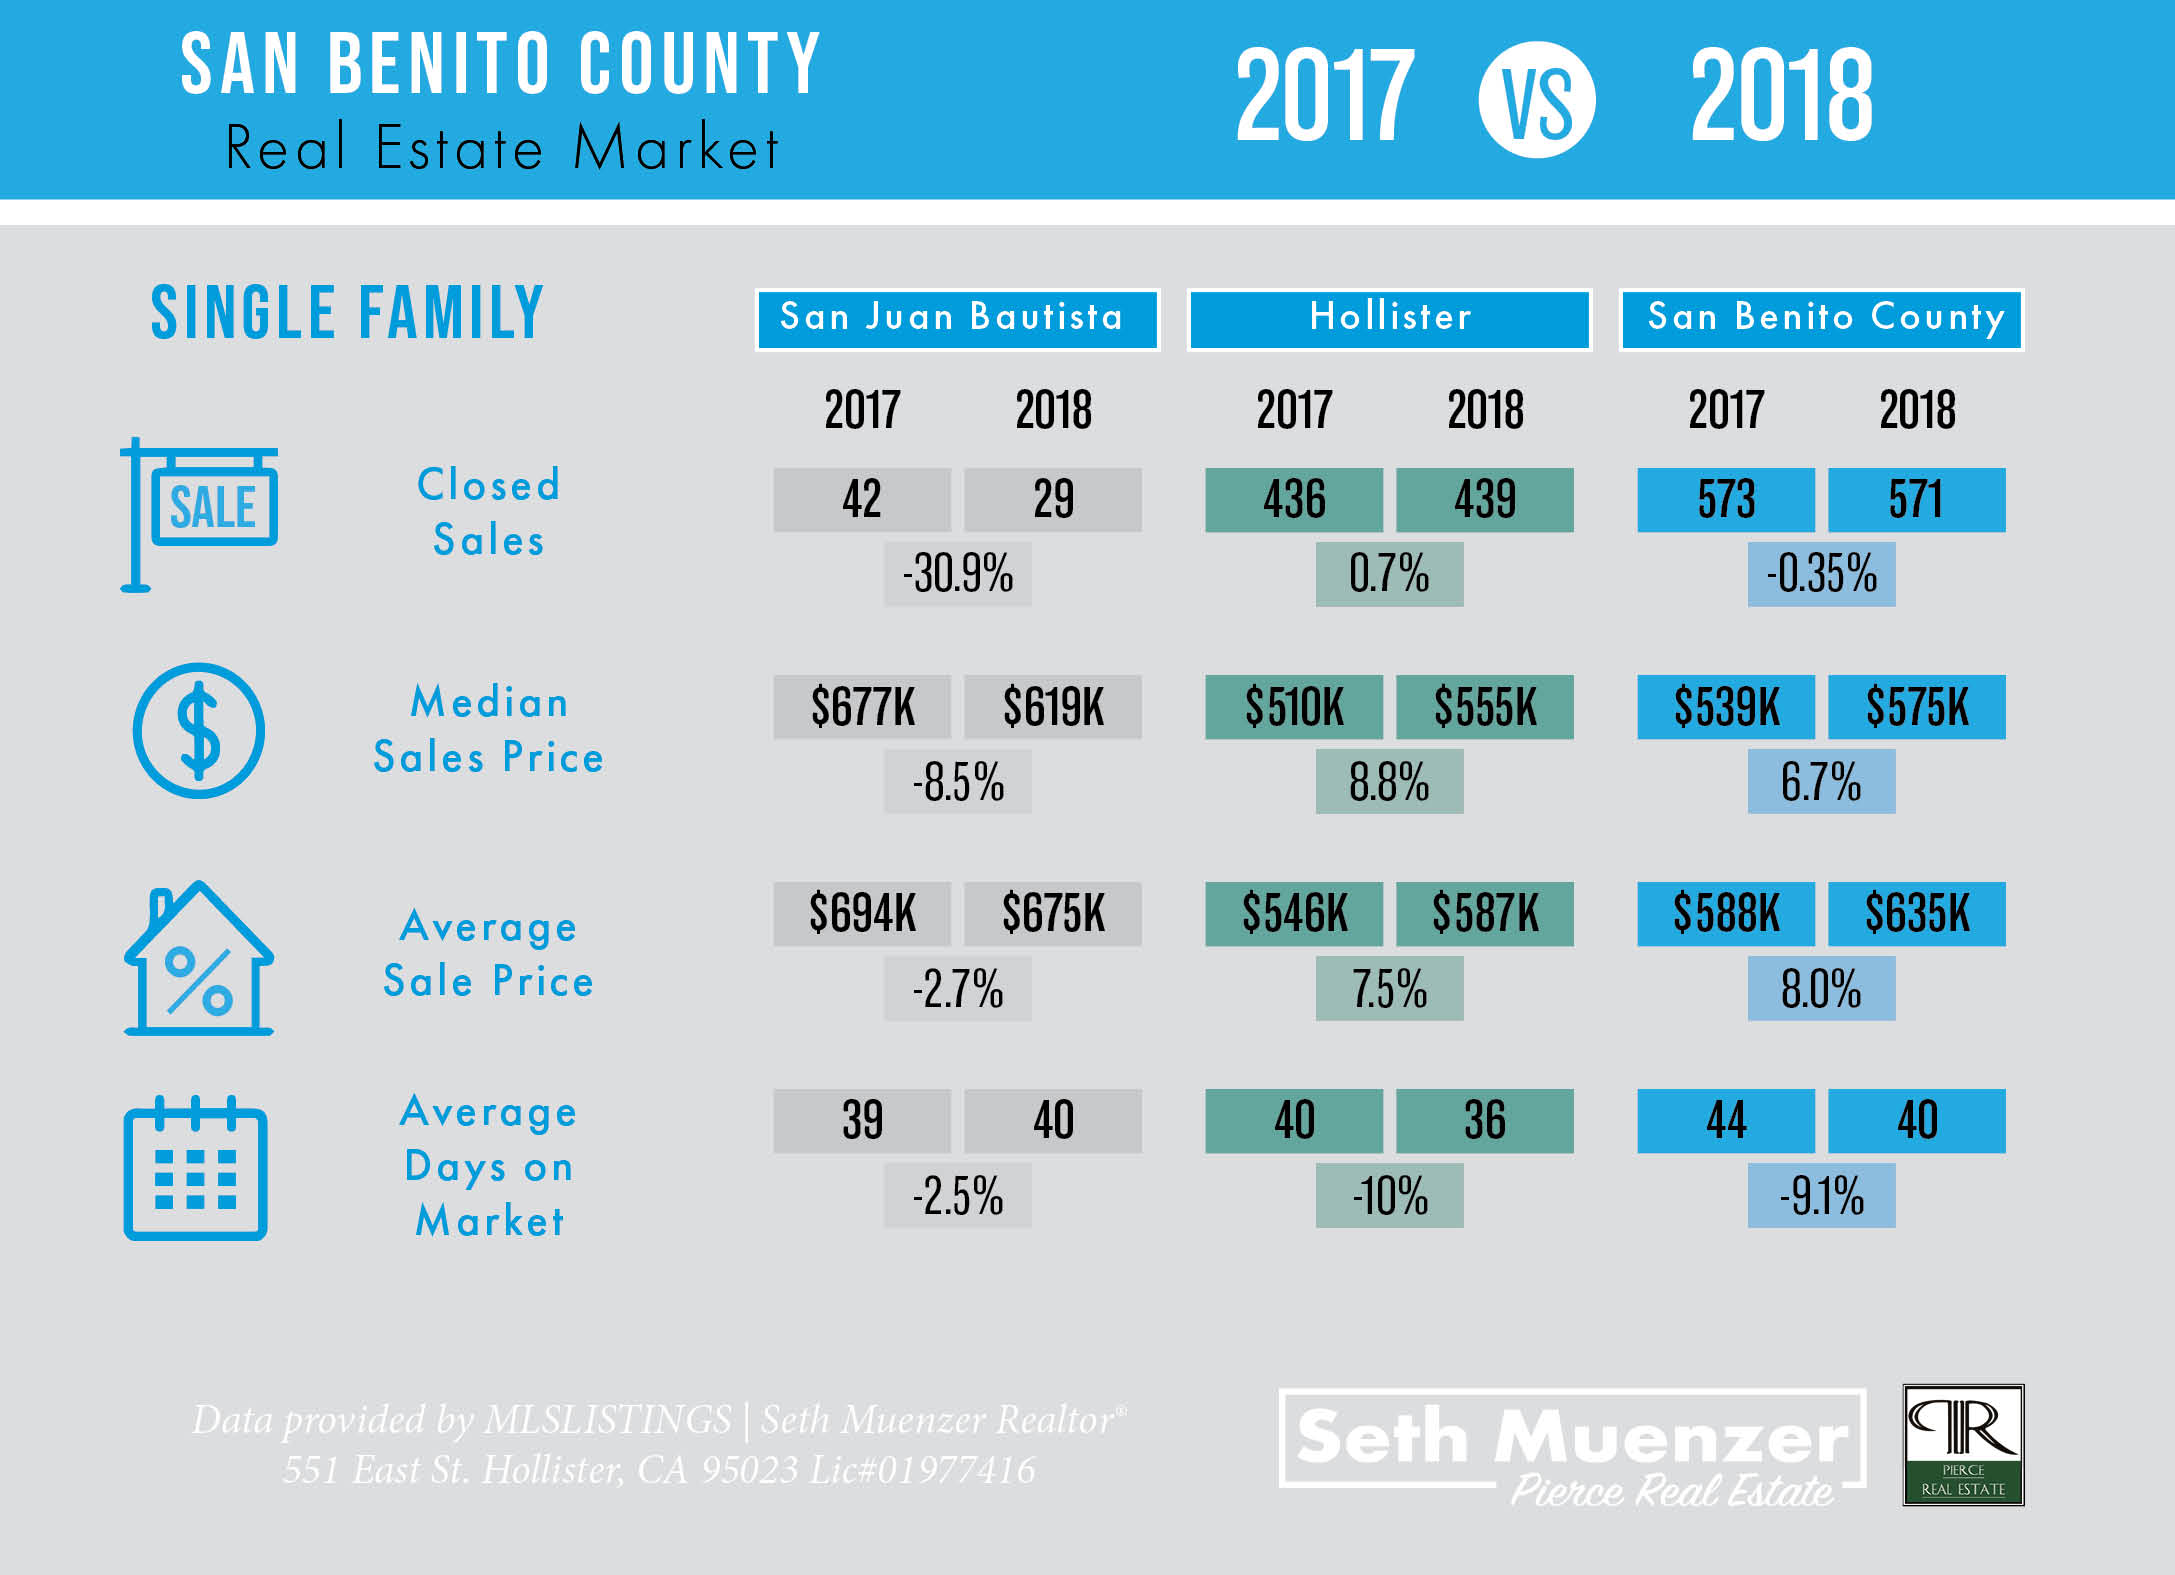 Hollister | San Benito Real Estate 2017 vs 2018 {INFOGRAPHIC}